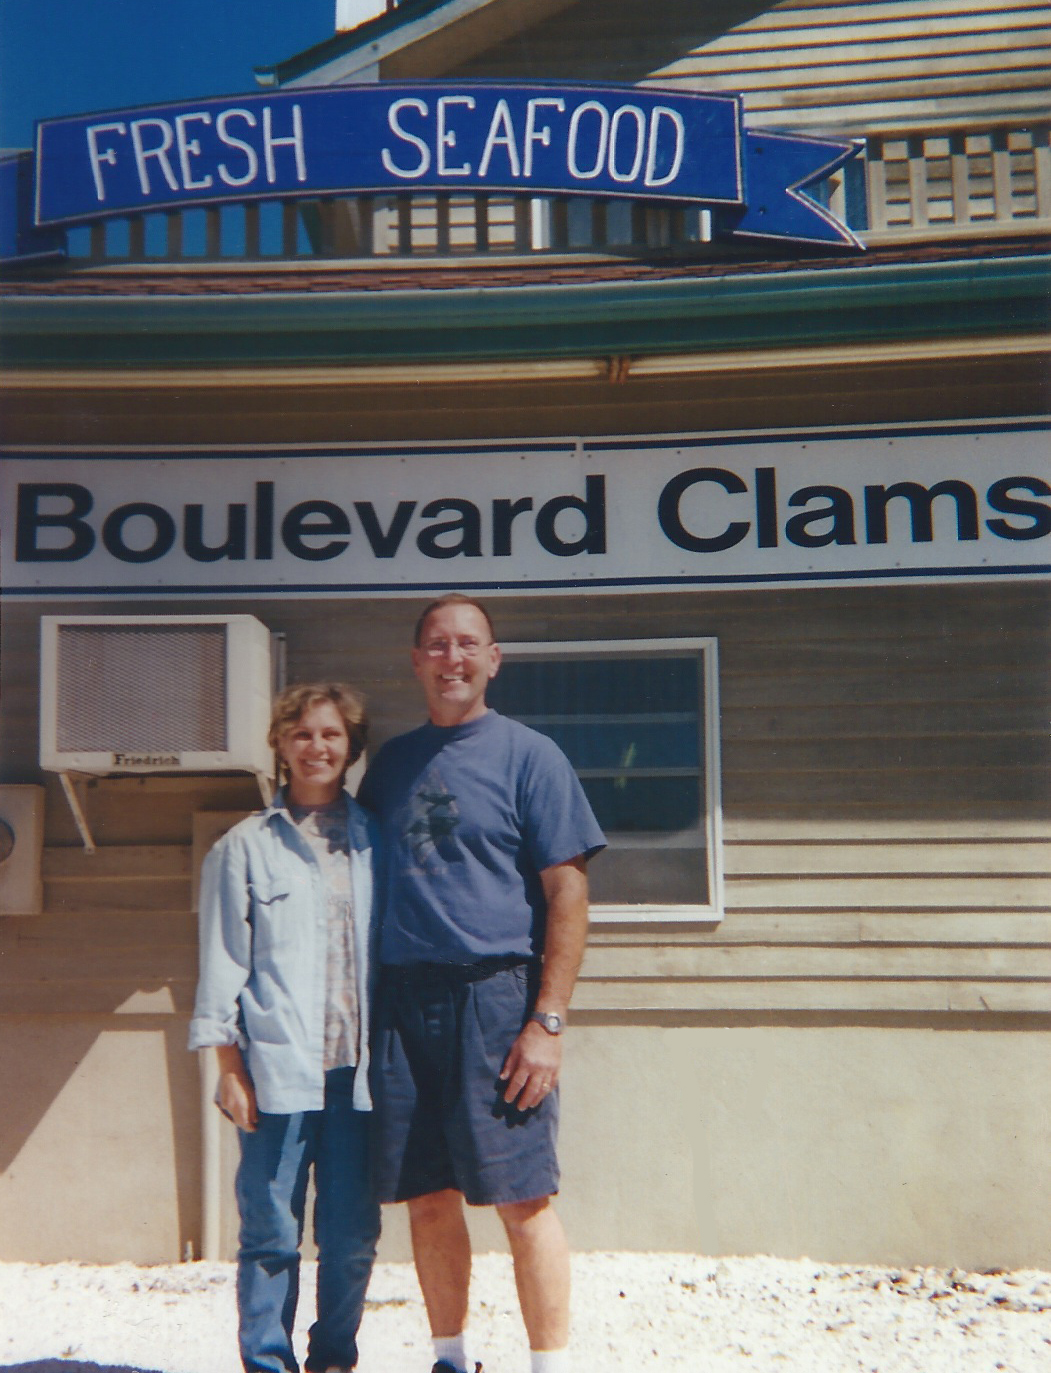 a couple standing in front of boulevard clams